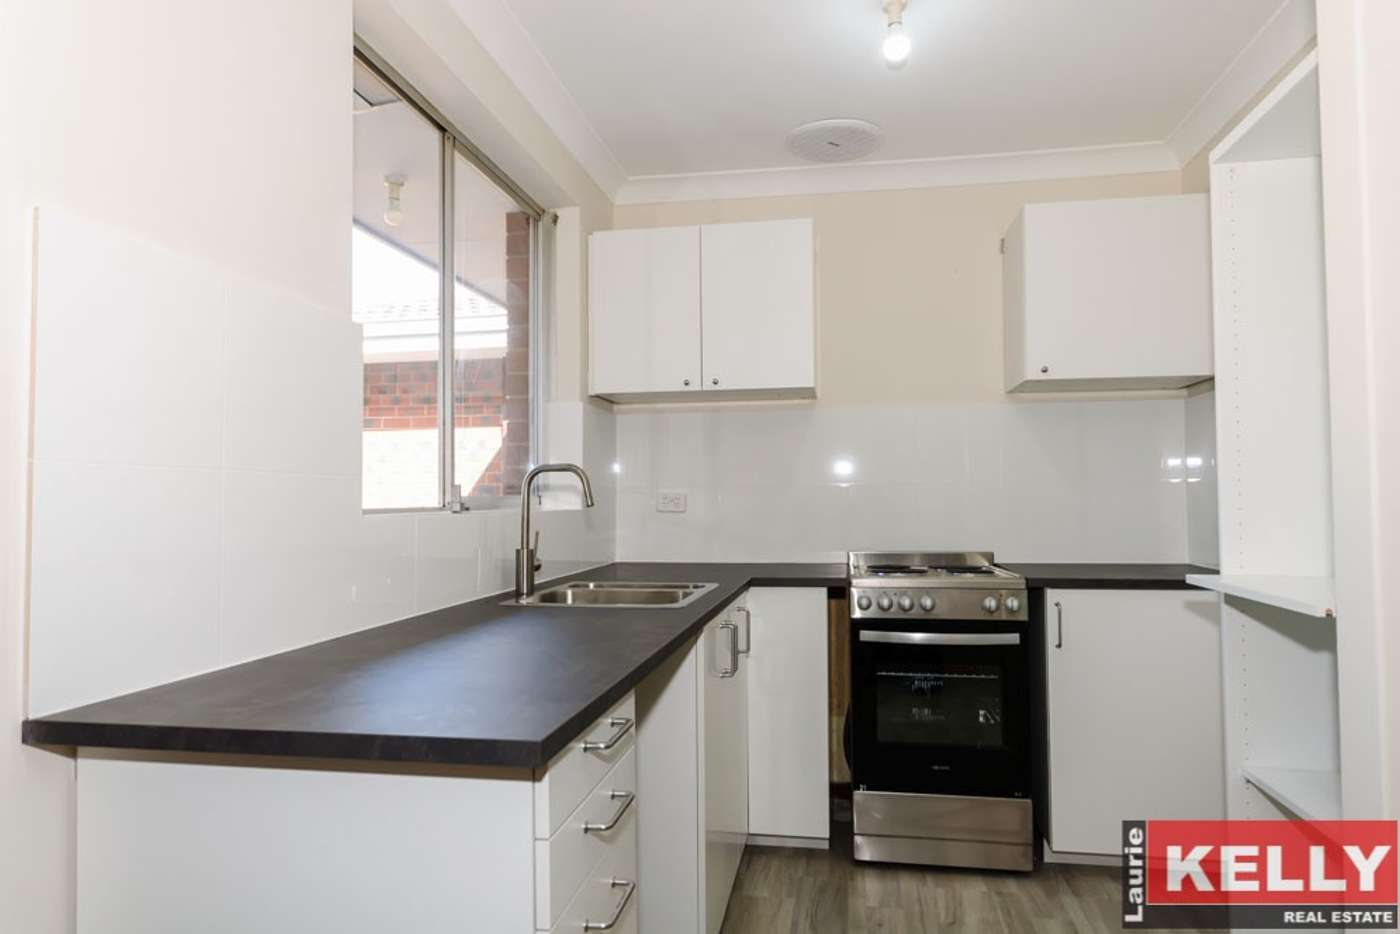 Main view of Homely house listing, 287 Knutsford Ave, Kewdale WA 6105